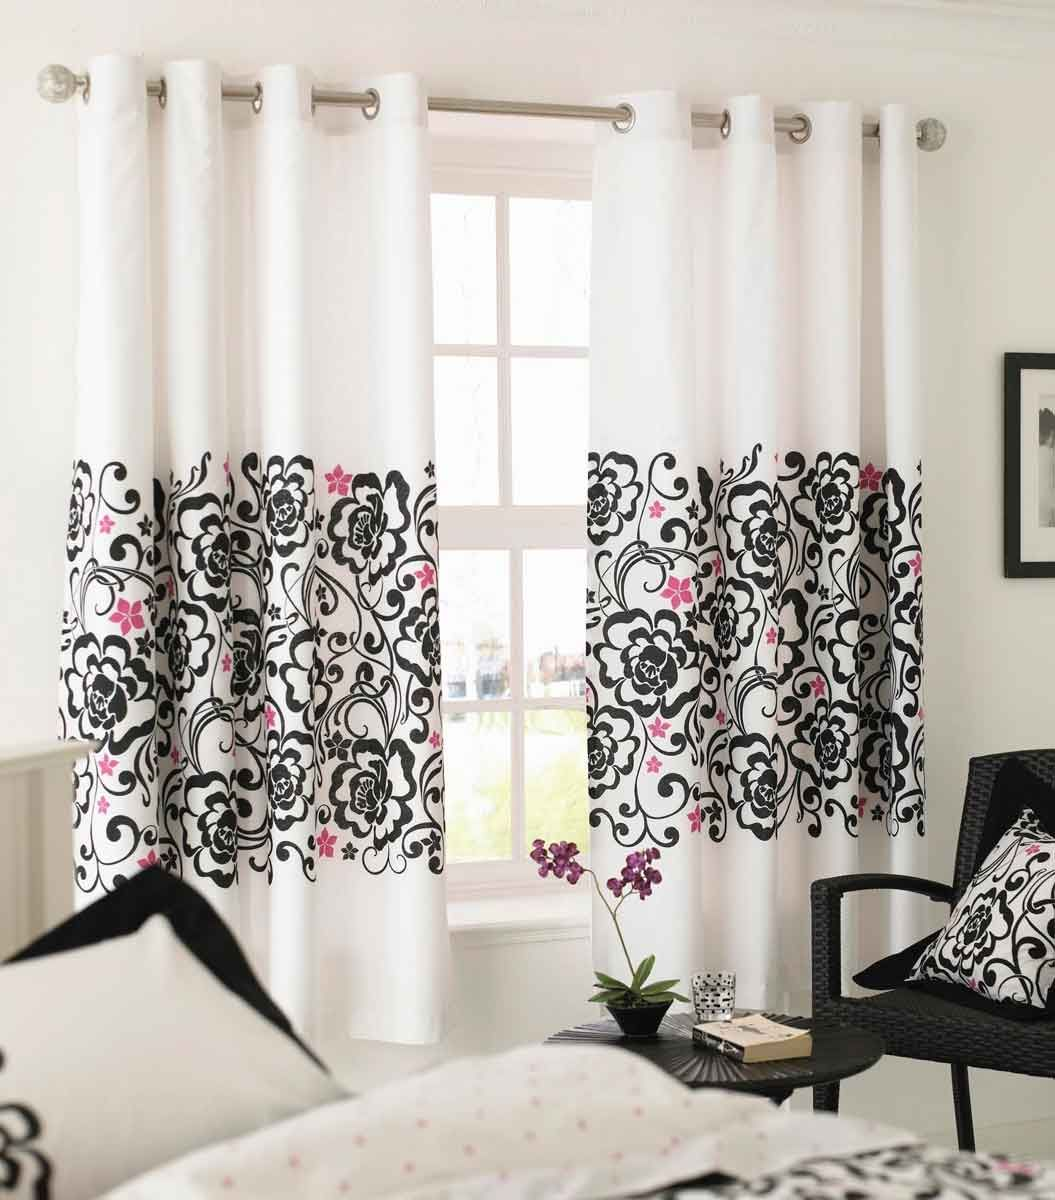 White Black And Pink Decor Patterns Window And Design